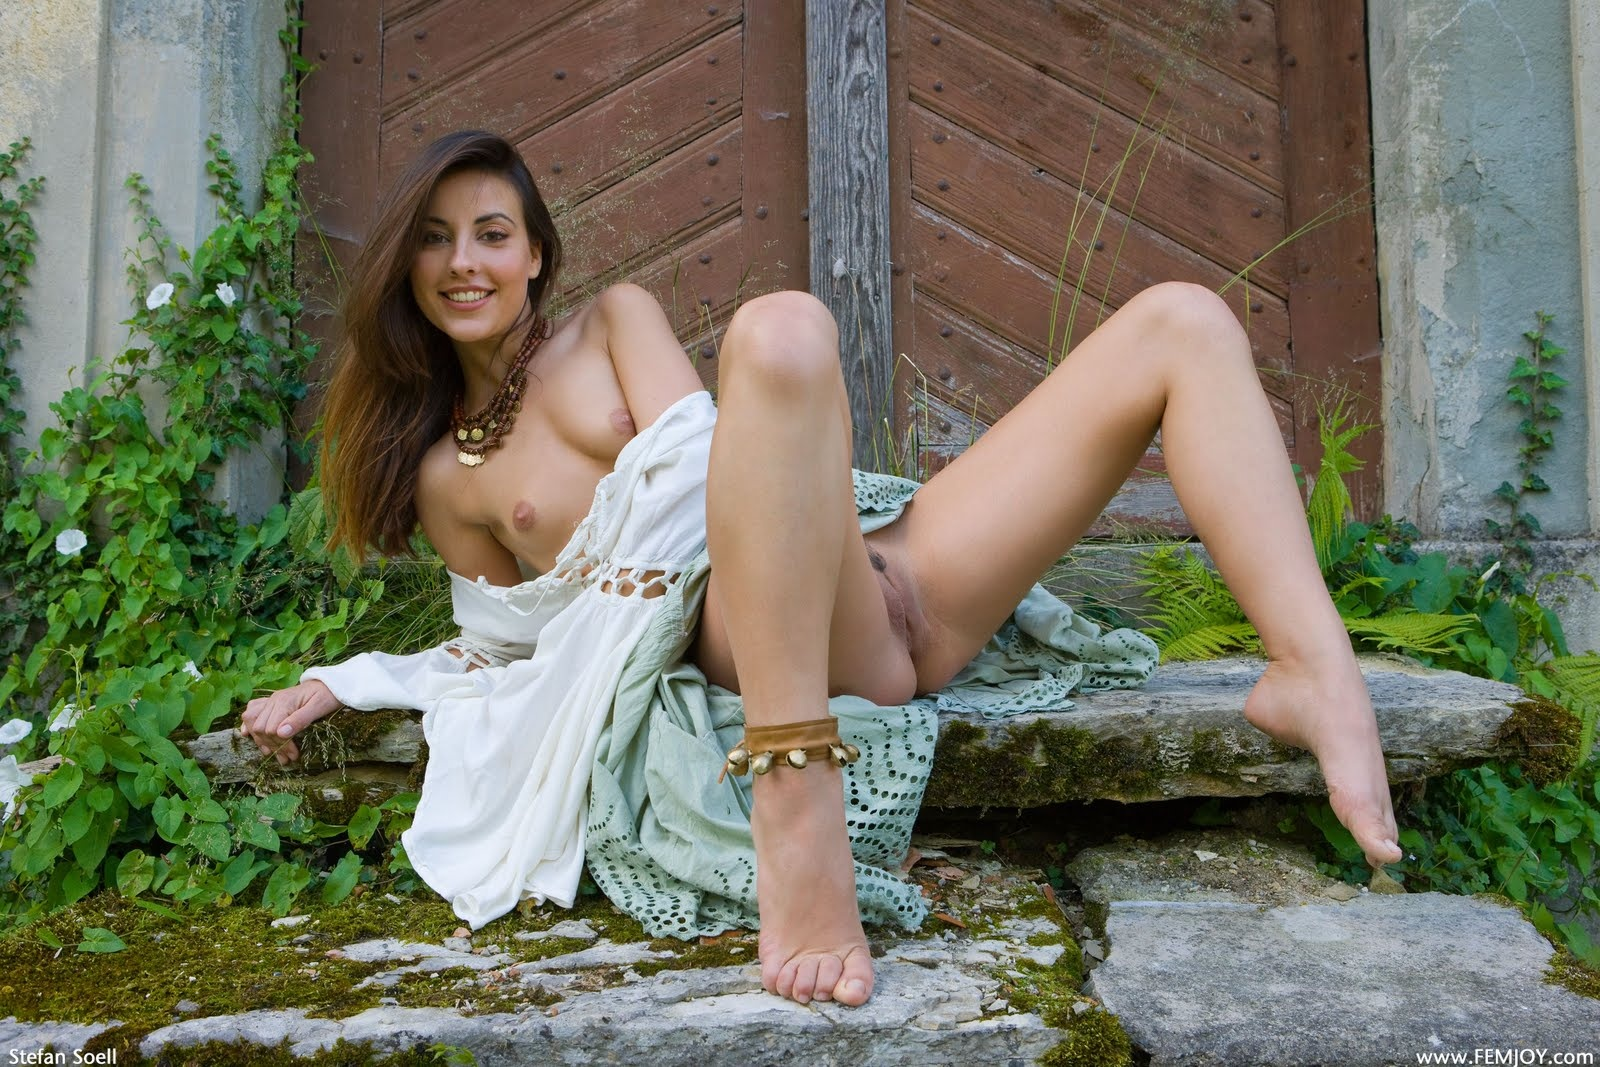 Wallpaper Lorena G Brunette Outdoor Sexy Smile Cute Spread Spreading Naked Tits Hot